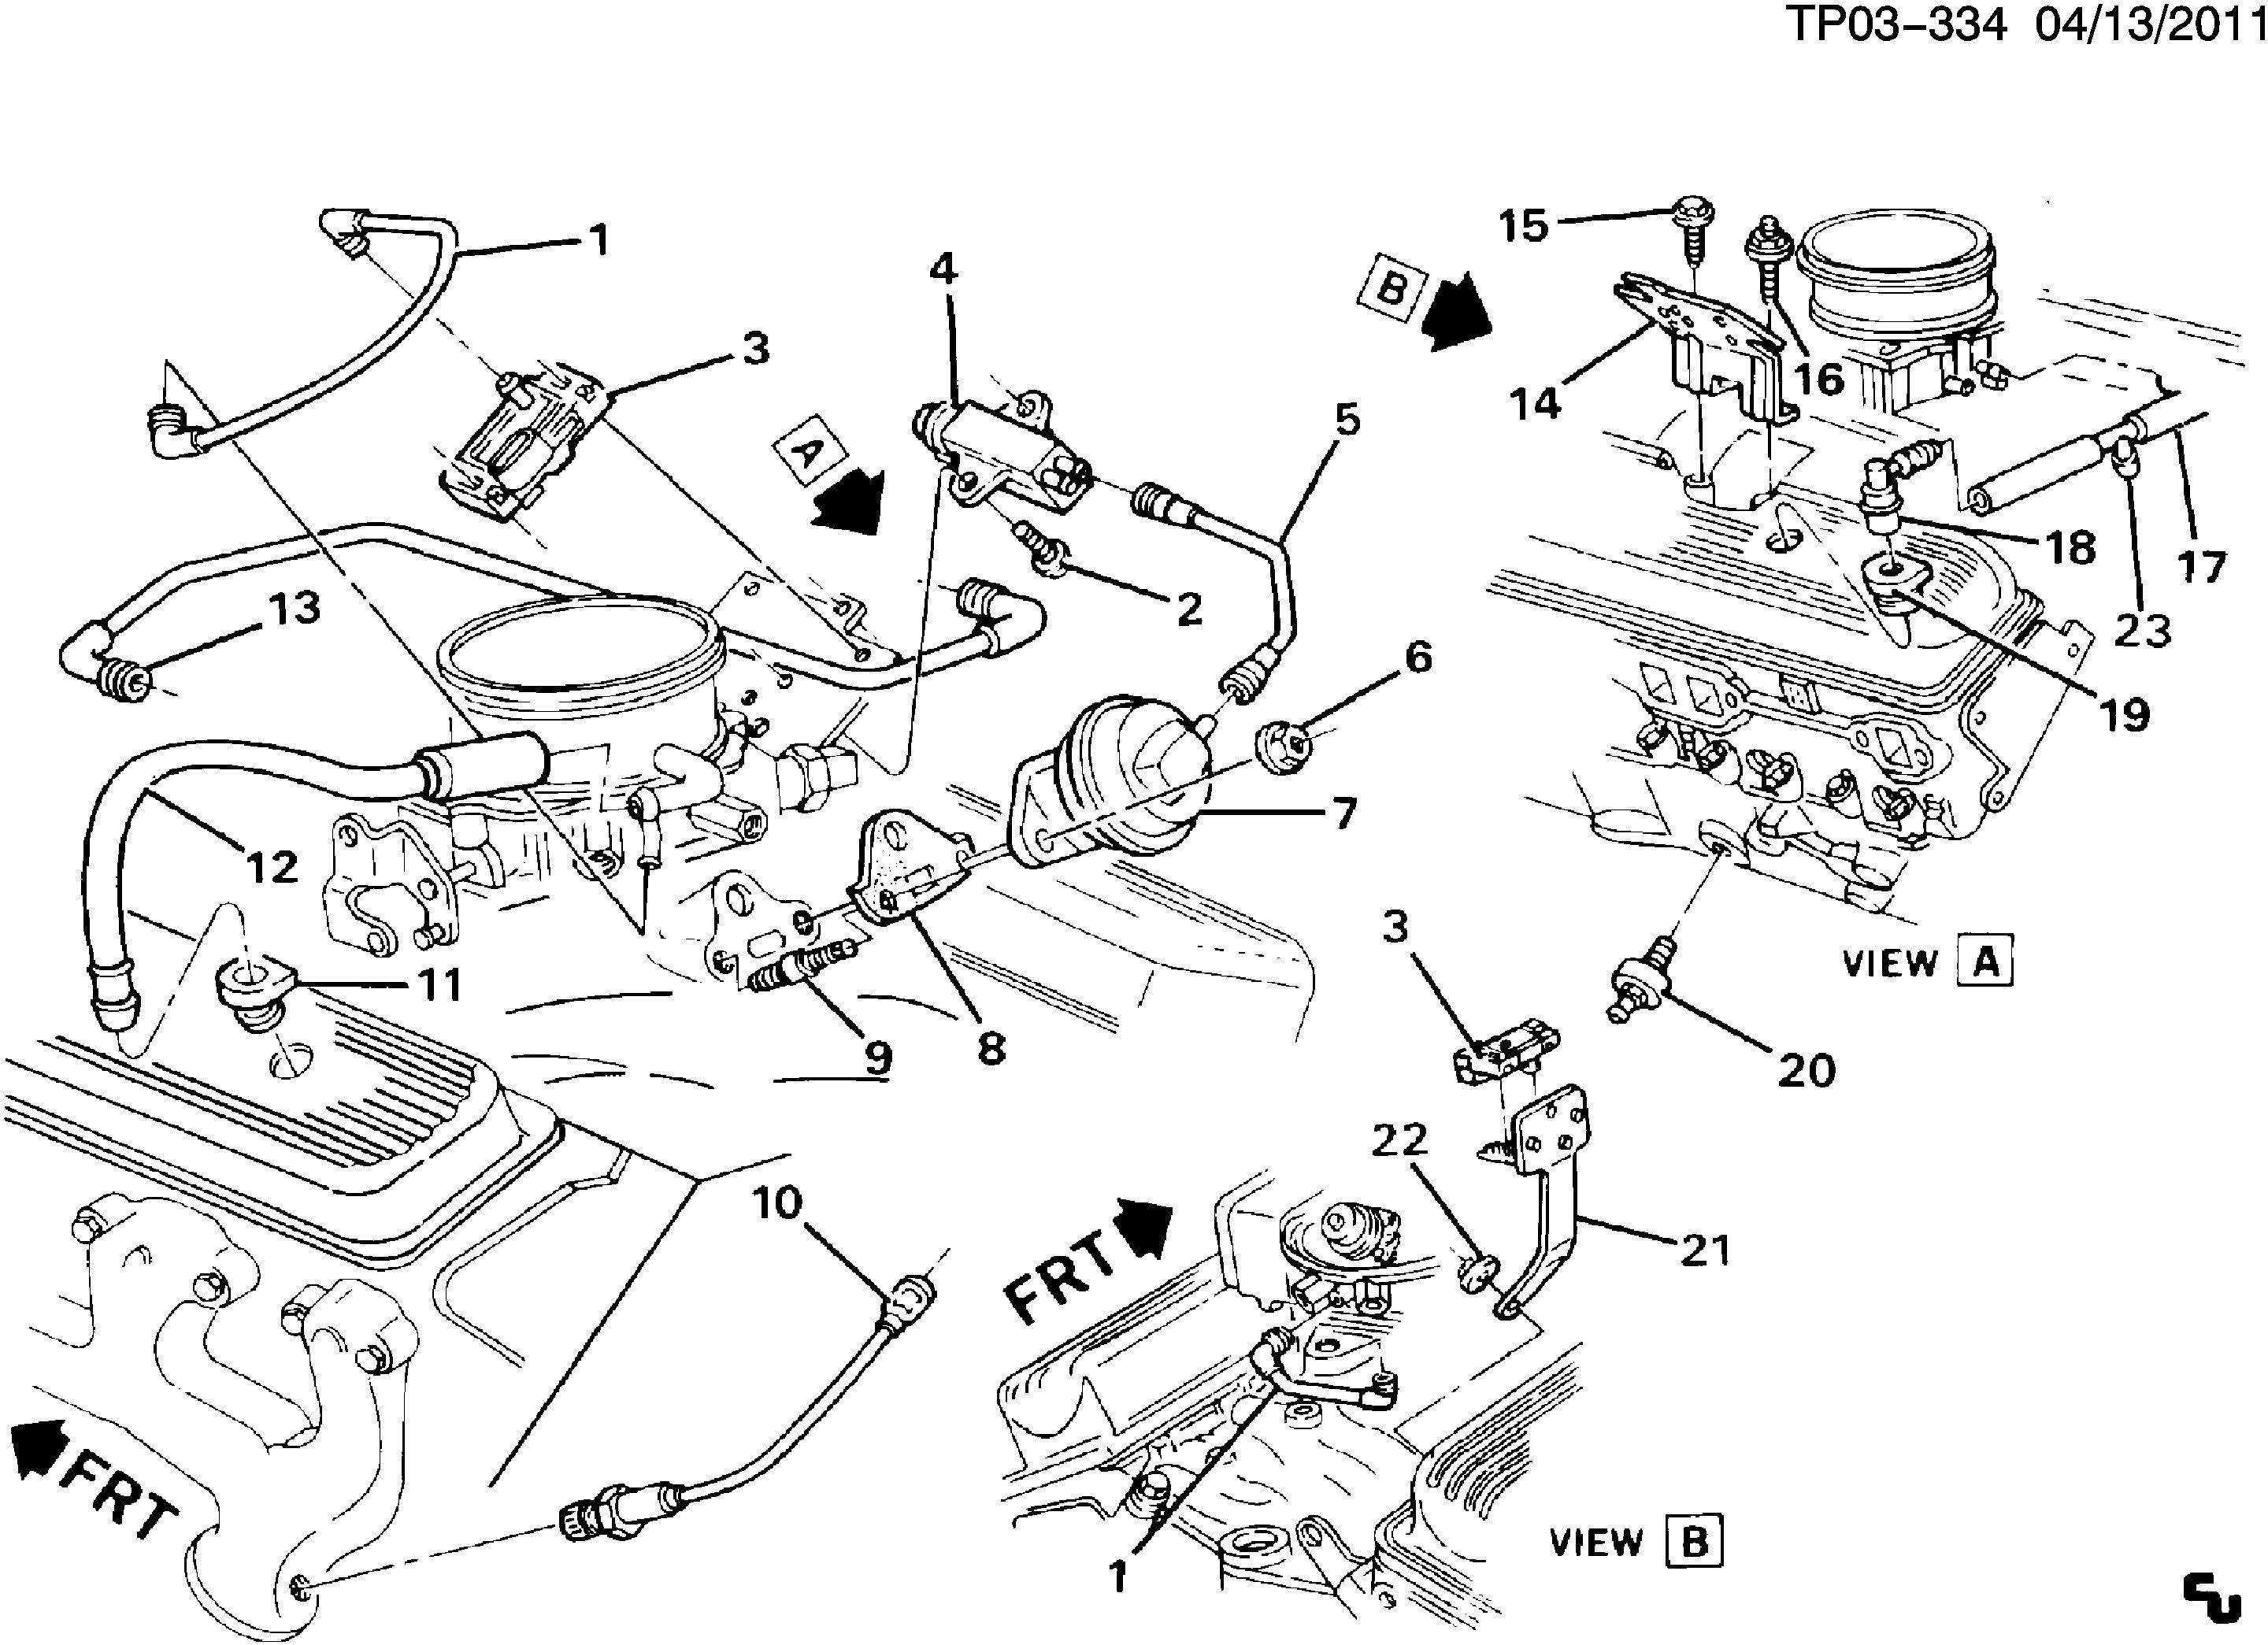 Chevy Truck Parts Diagram Diagram Moreover 1997 Chevy Tahoe Engine Diagram Along with Gmc Of Chevy Truck Parts Diagram